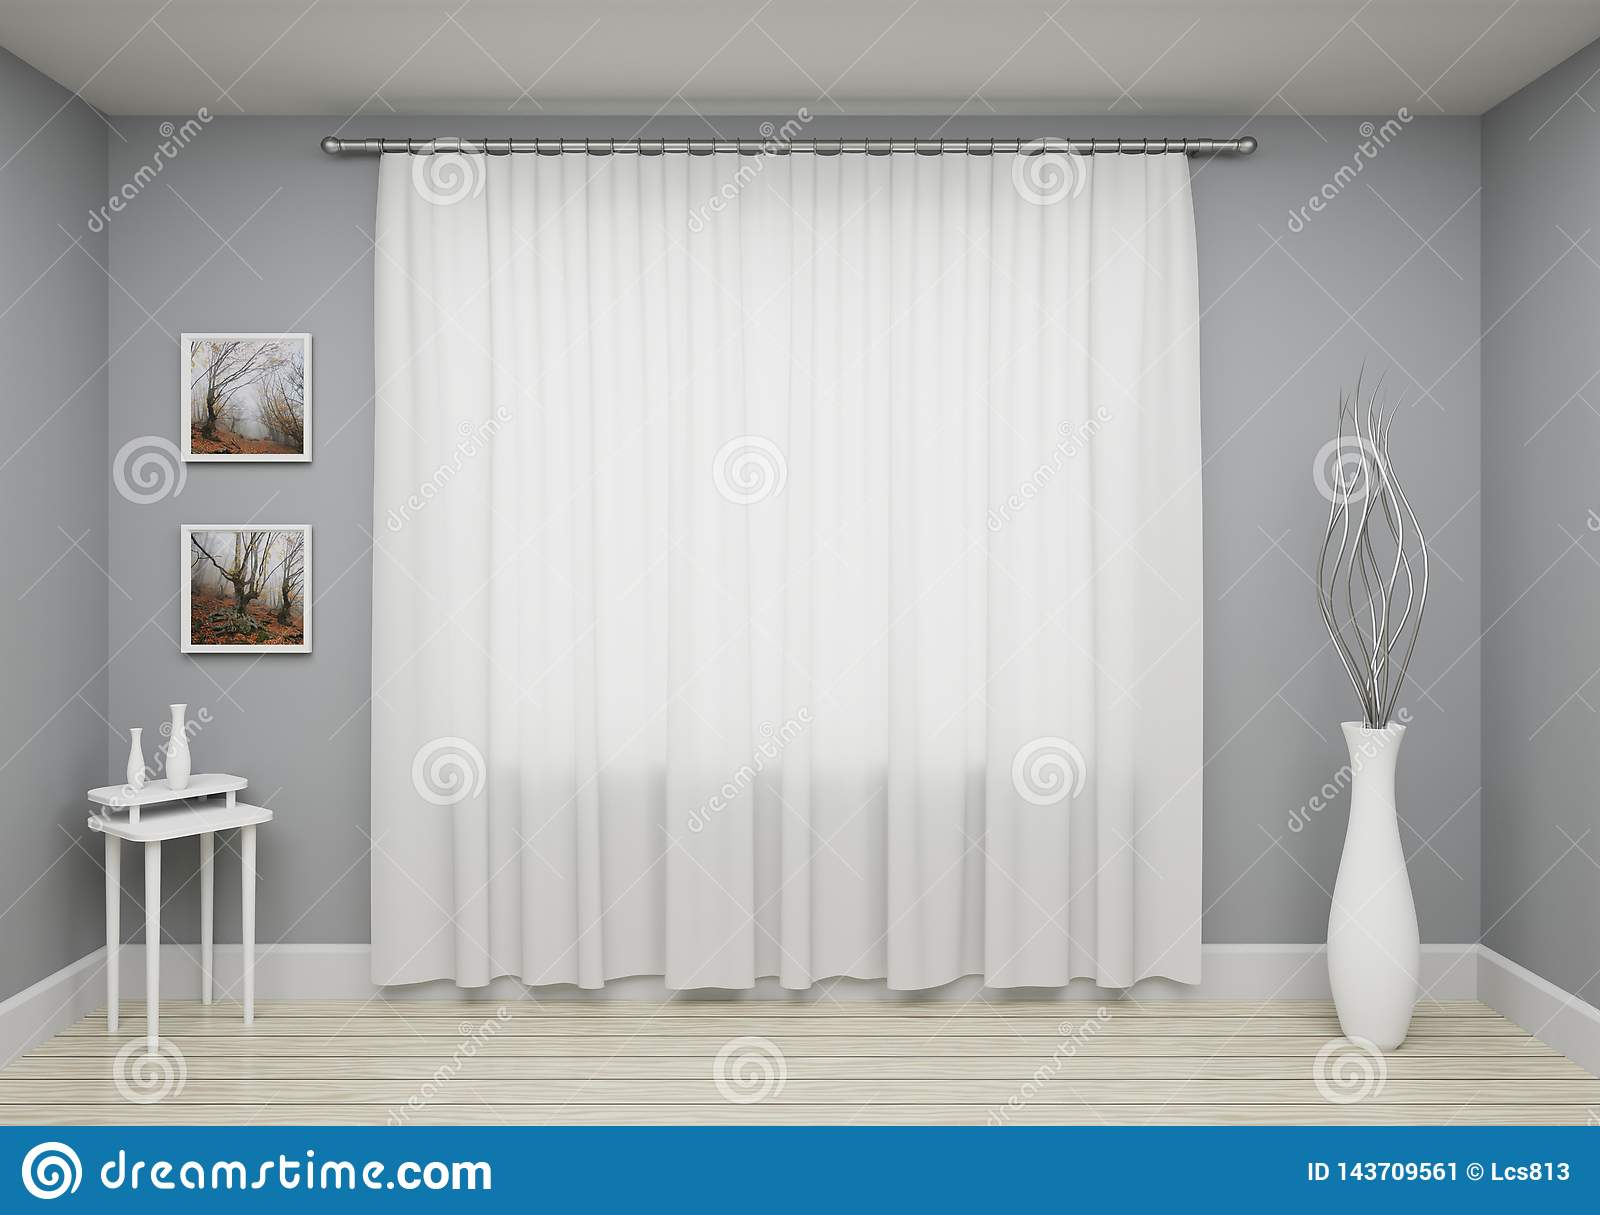 Grey Interior Living Room With Window And Curtain Decoration On Wall Template For Your Design Stock Illustration Illustration Of Room Simple 143709561